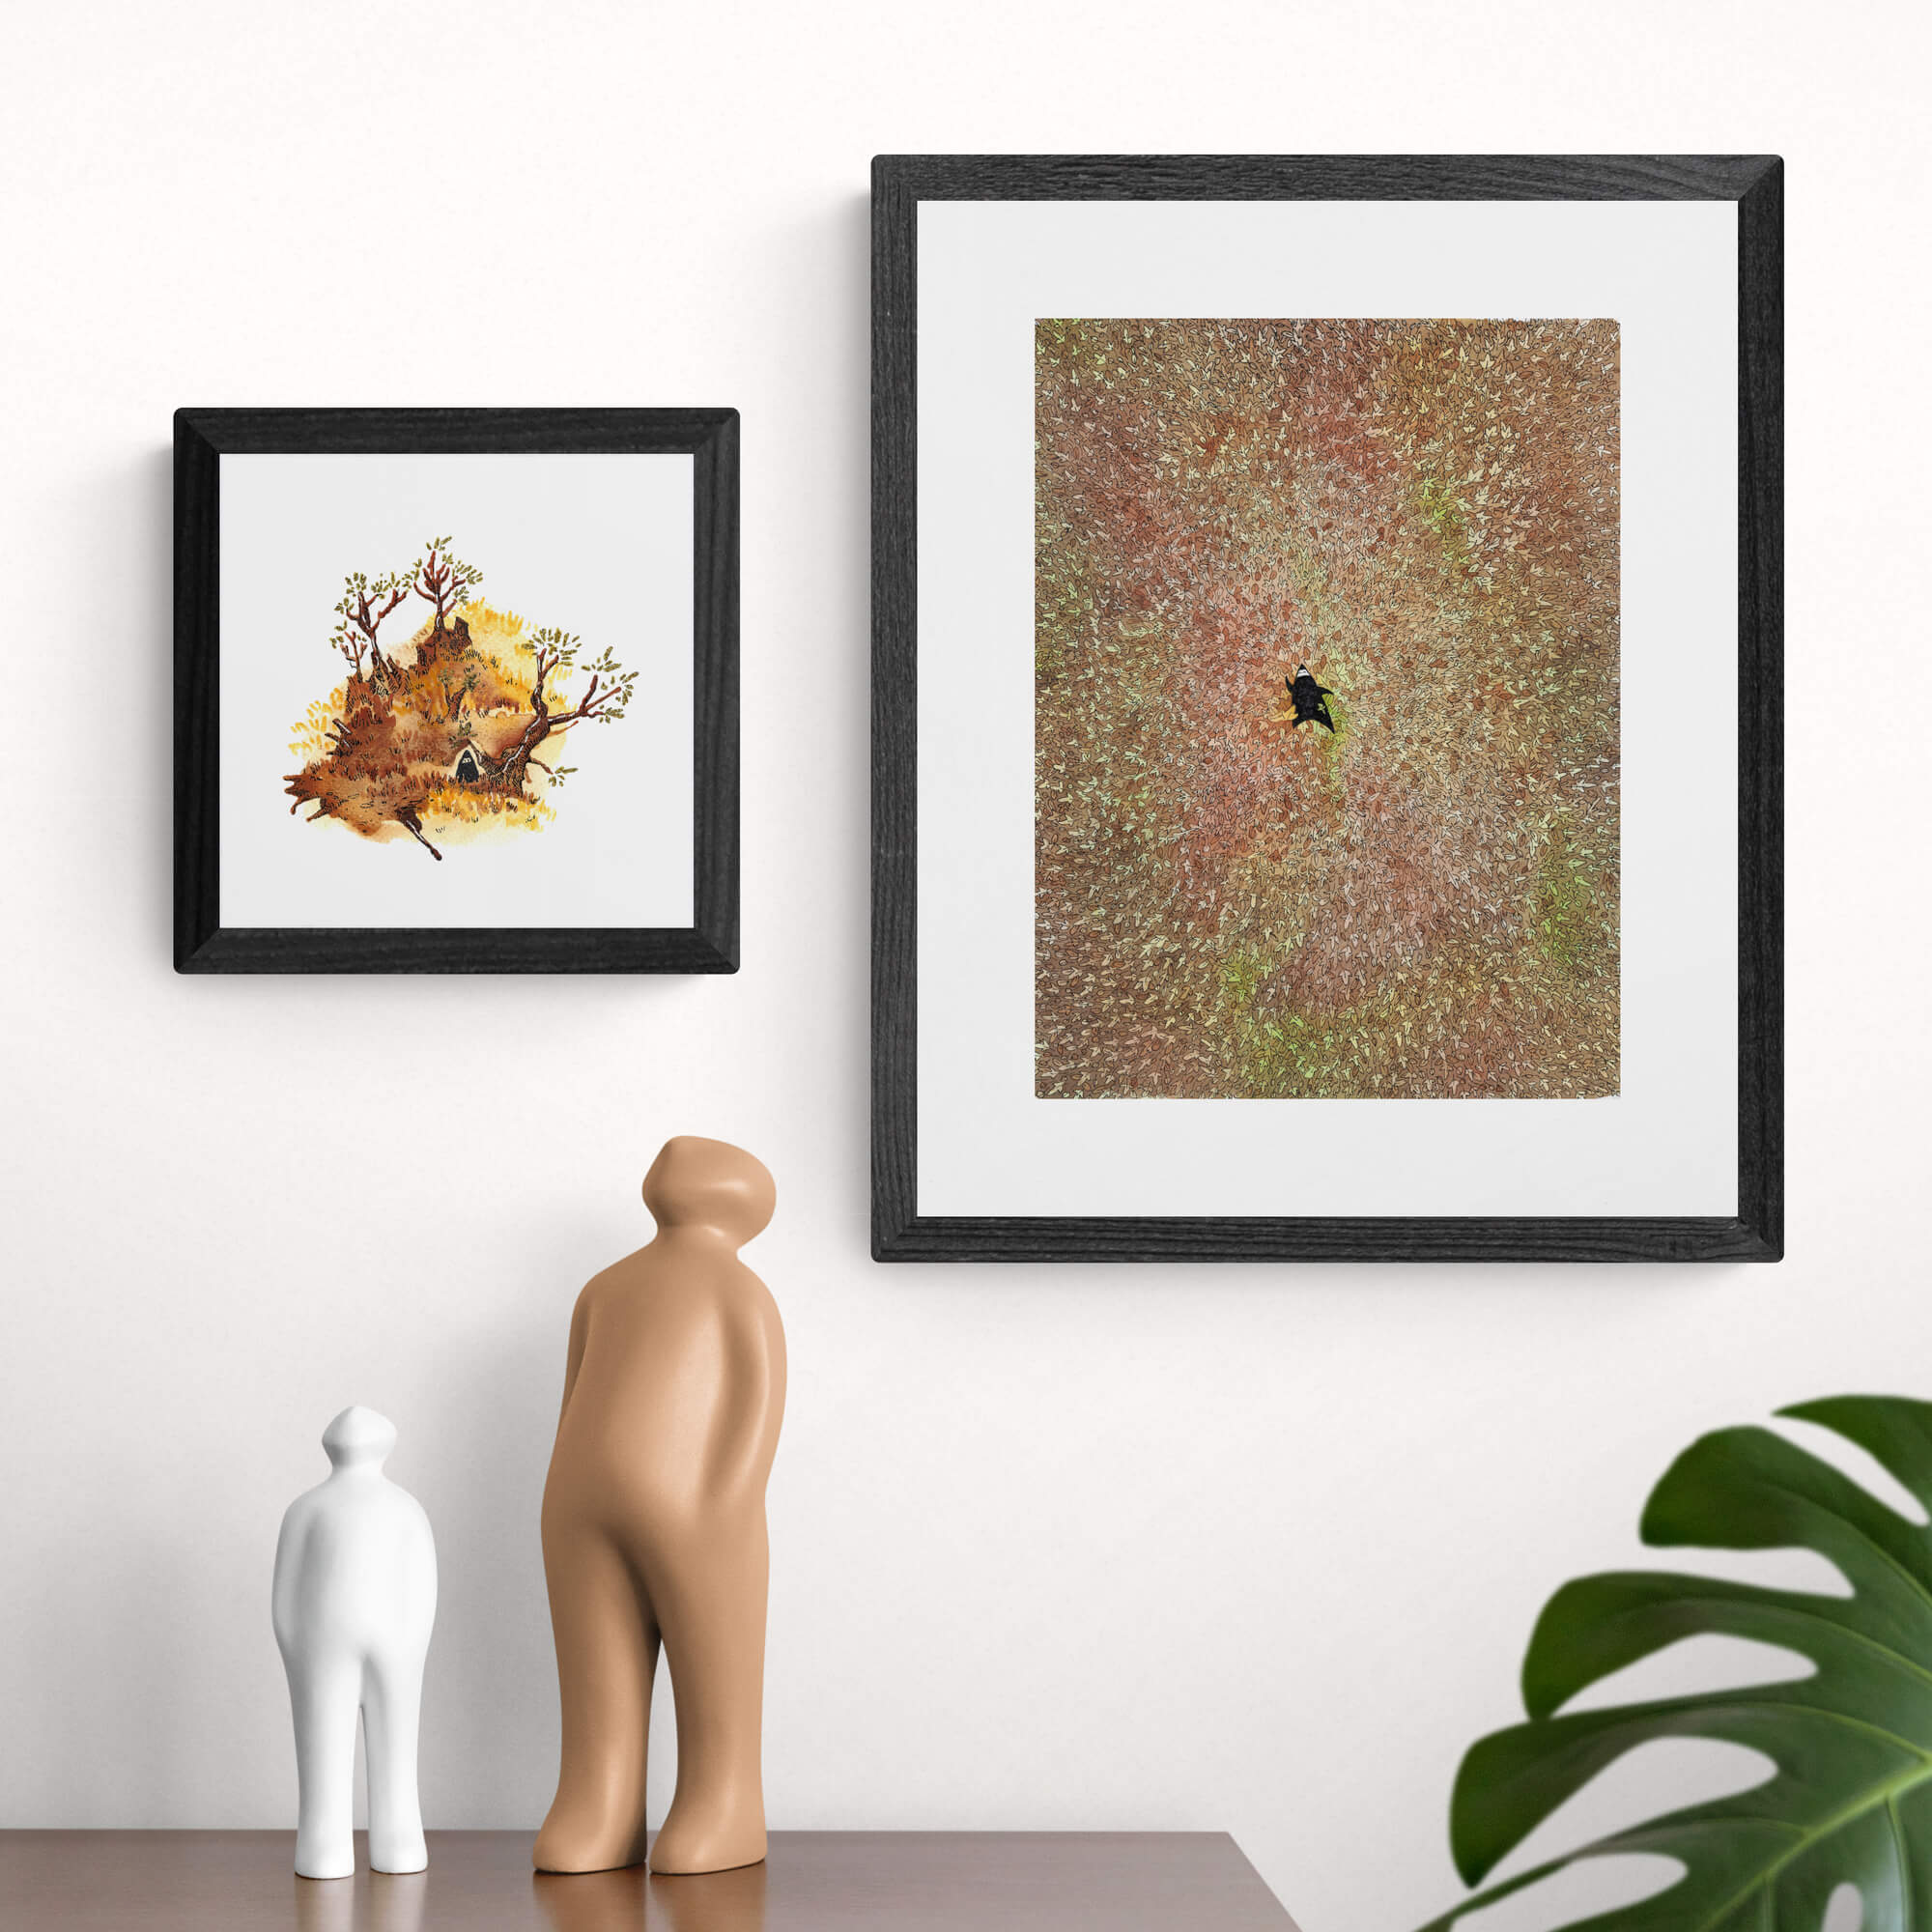 Two autumn paintings: one is abstract and one represents a ninja rolling in autumn leaves.